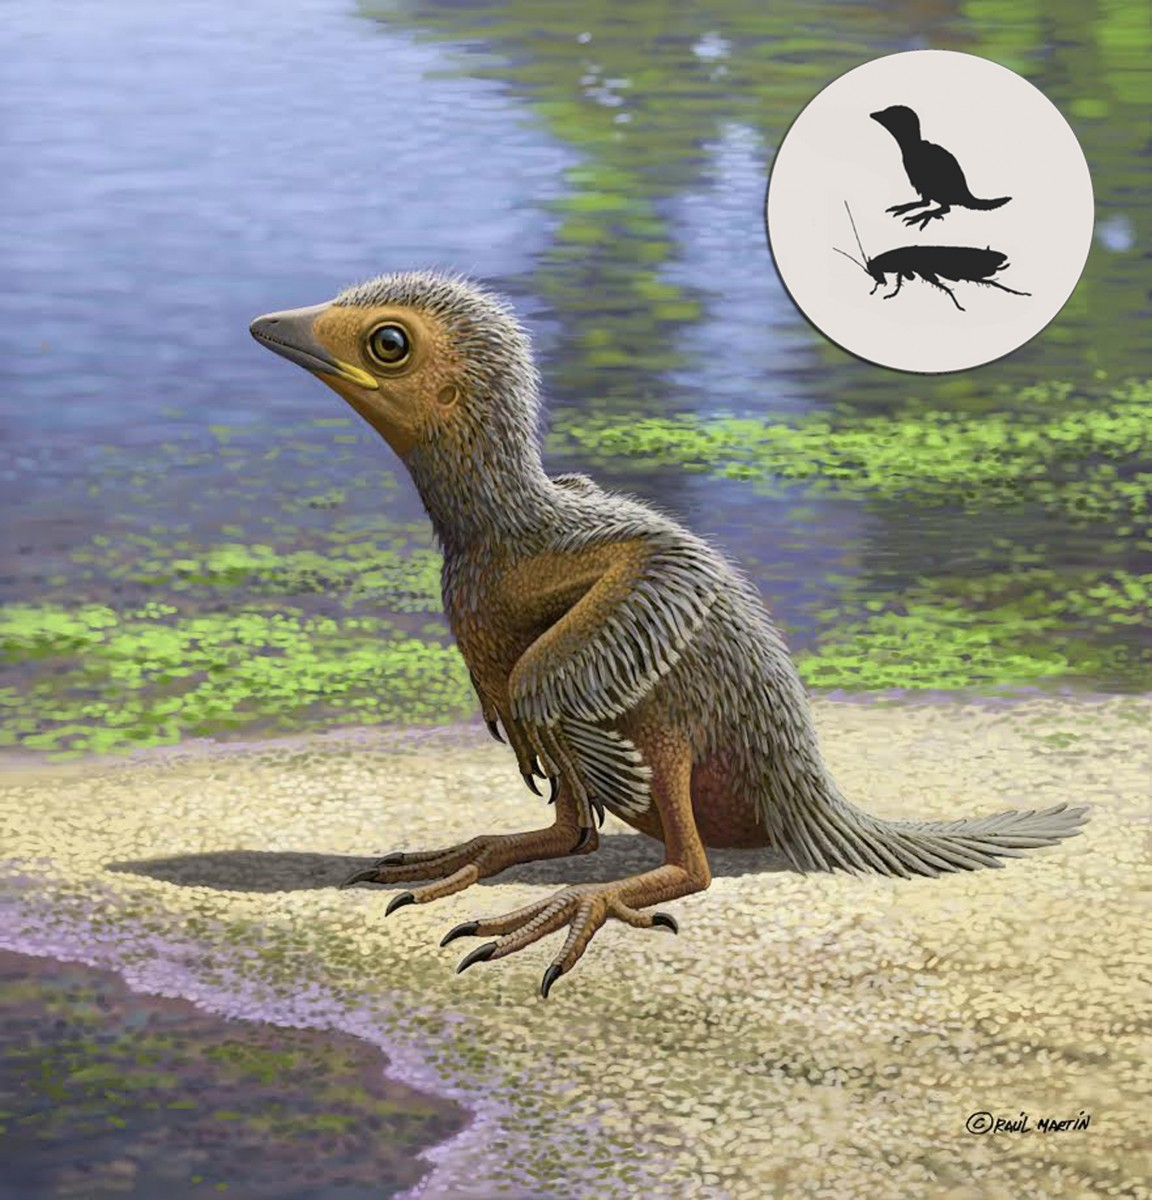 Baby bird fossil is 'rarest of the rare'